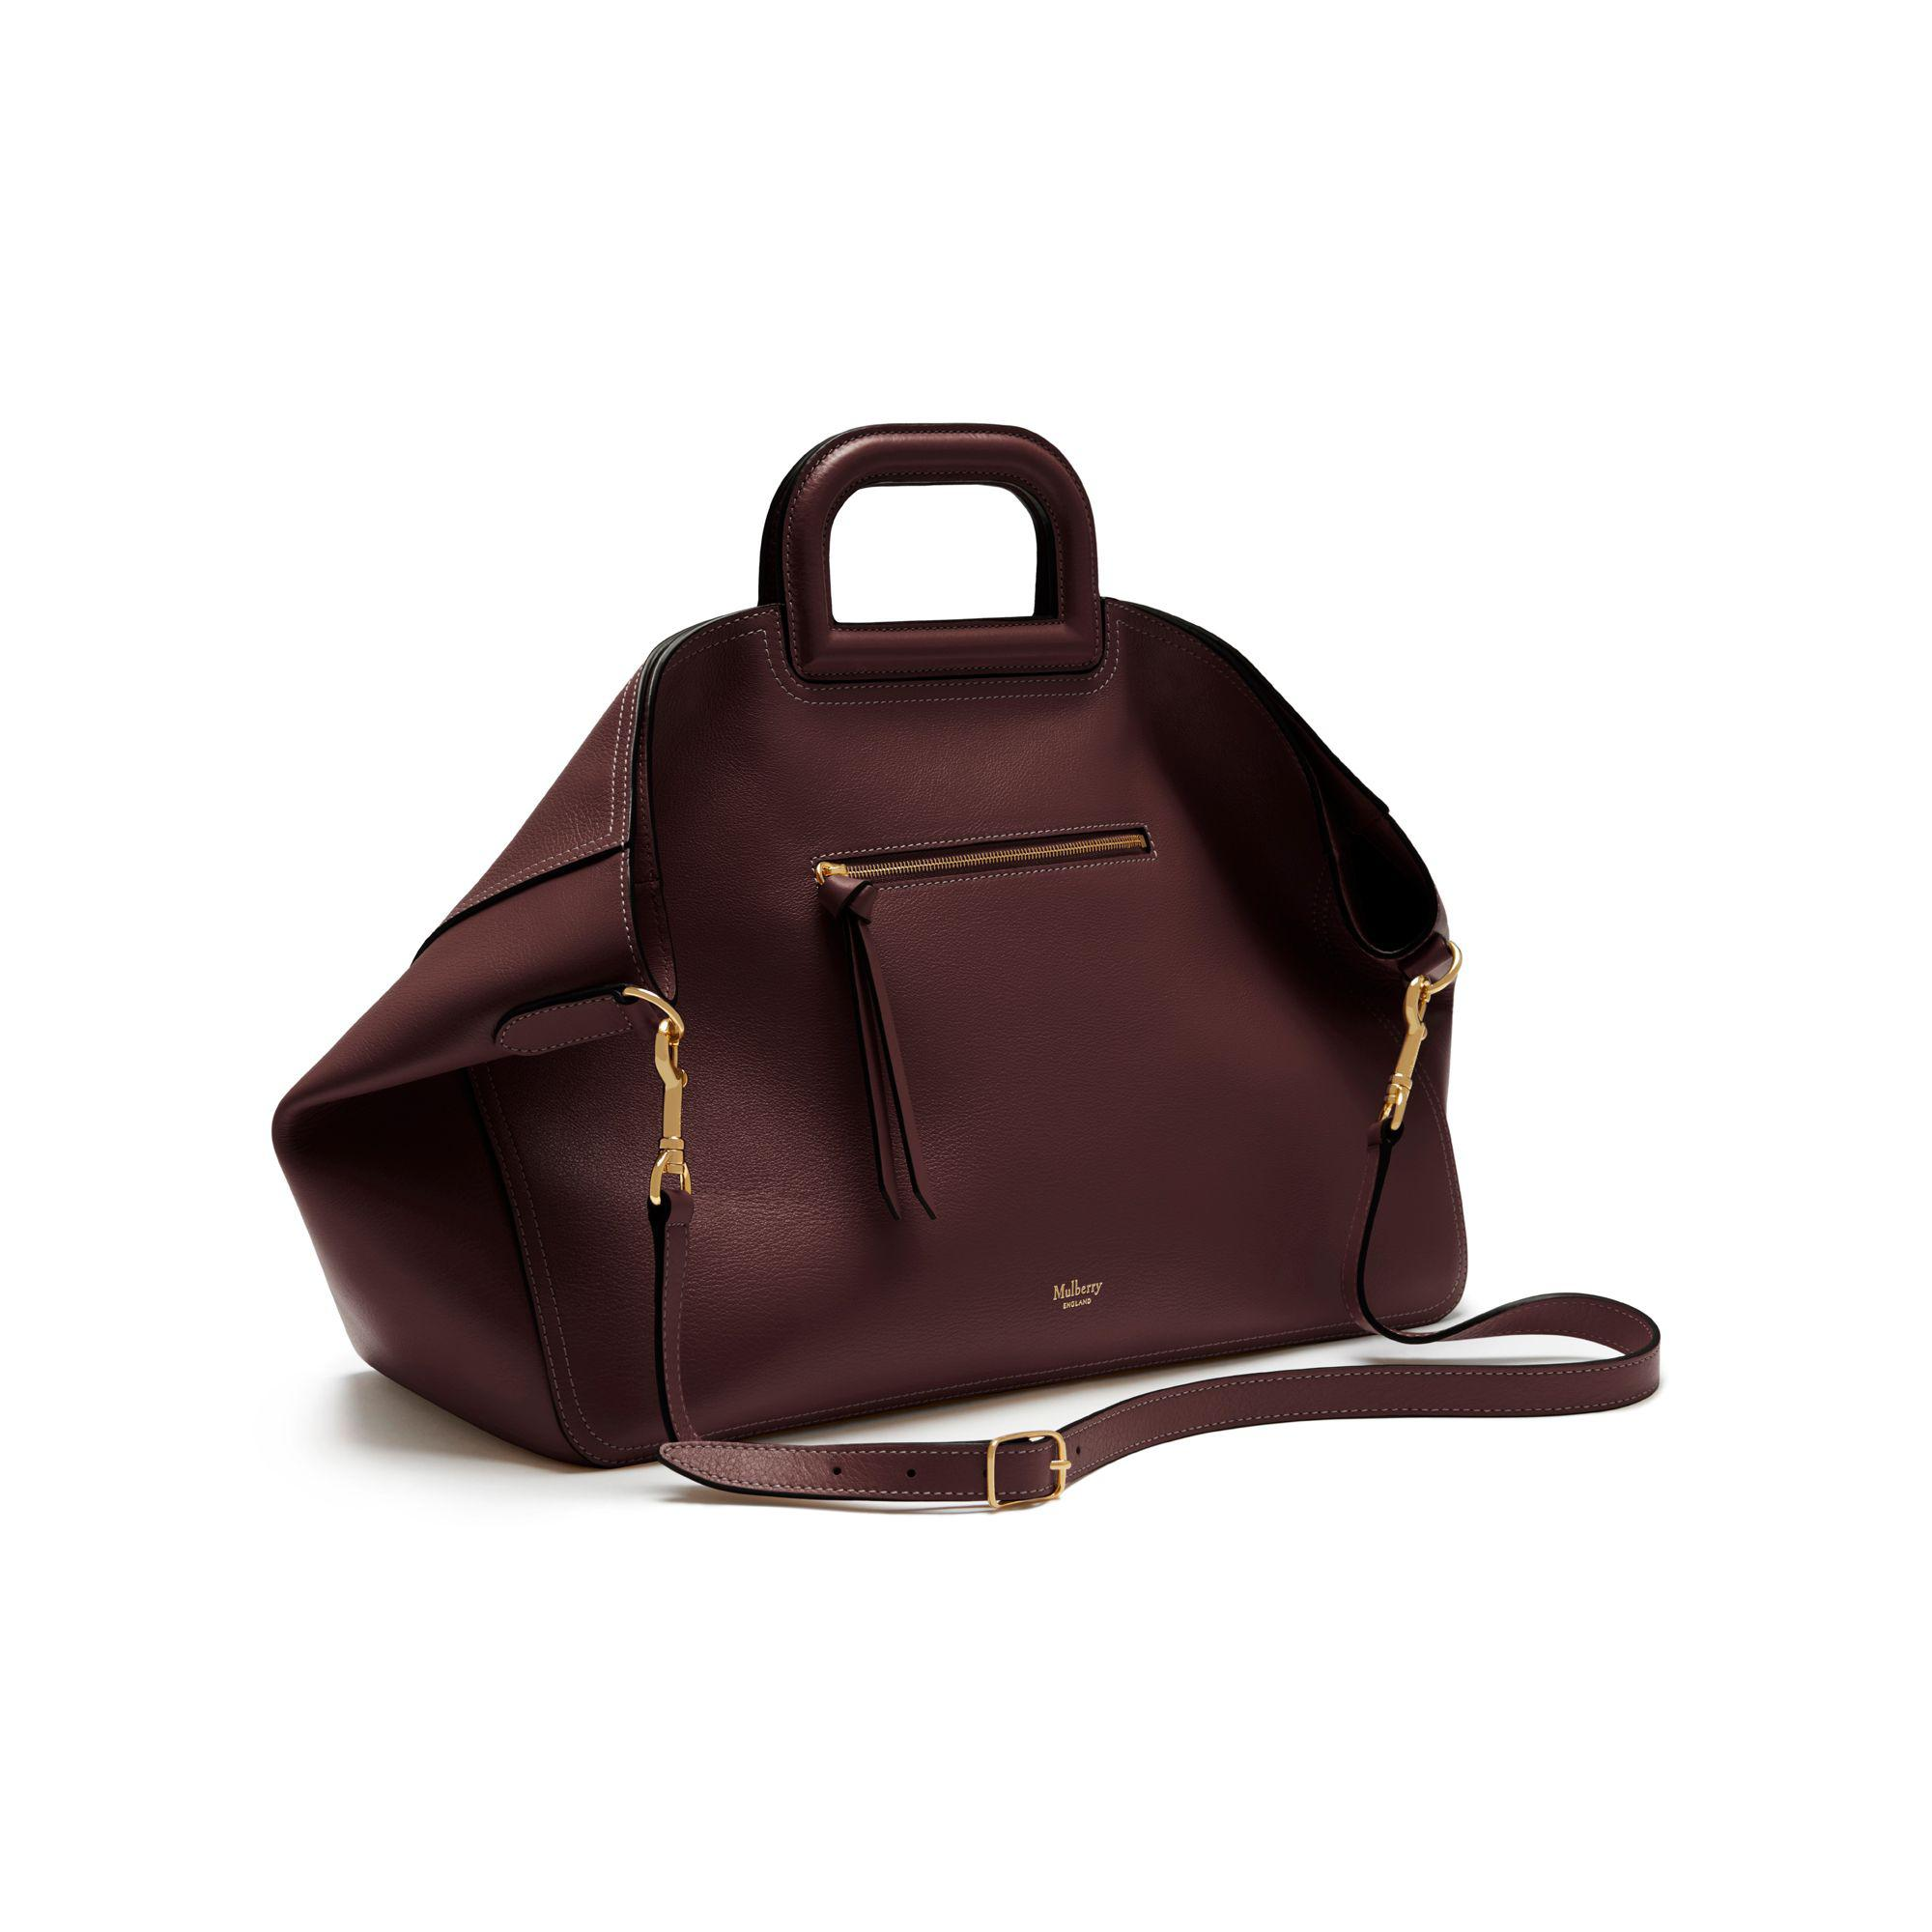 ... germany mulberry medium clipper bag lyst lyst mulberry brimley tote  20799 35234 83dc32bc66d69